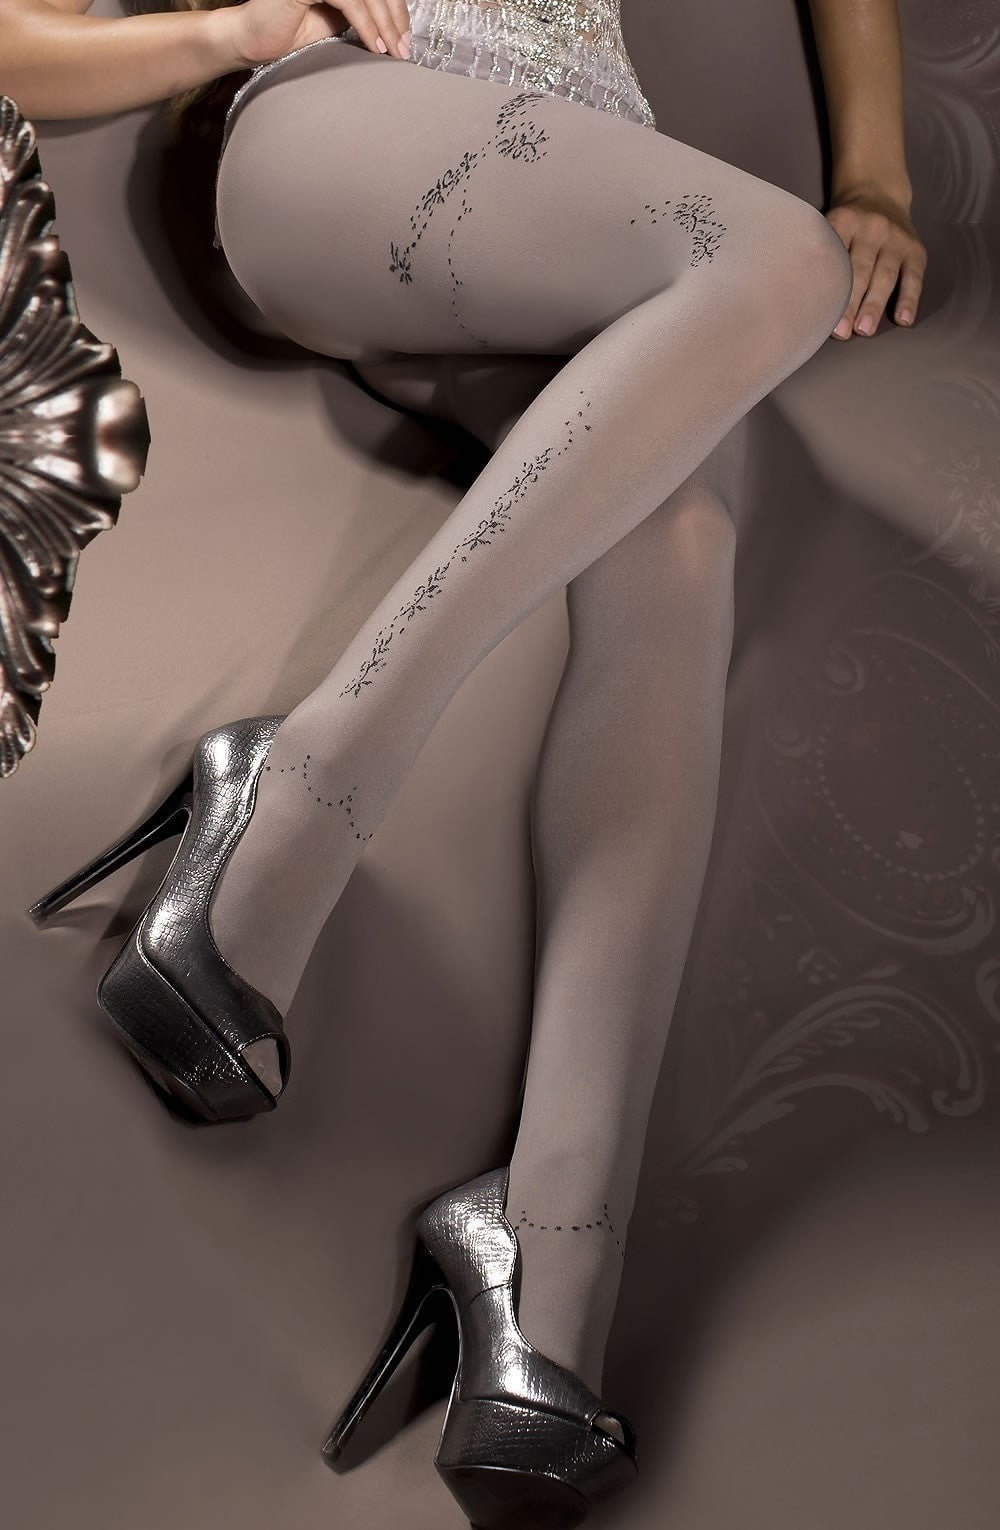 Ballerina Tights 298 (Smoke) - Tights - Ballerina - Charm and Lace Boutique